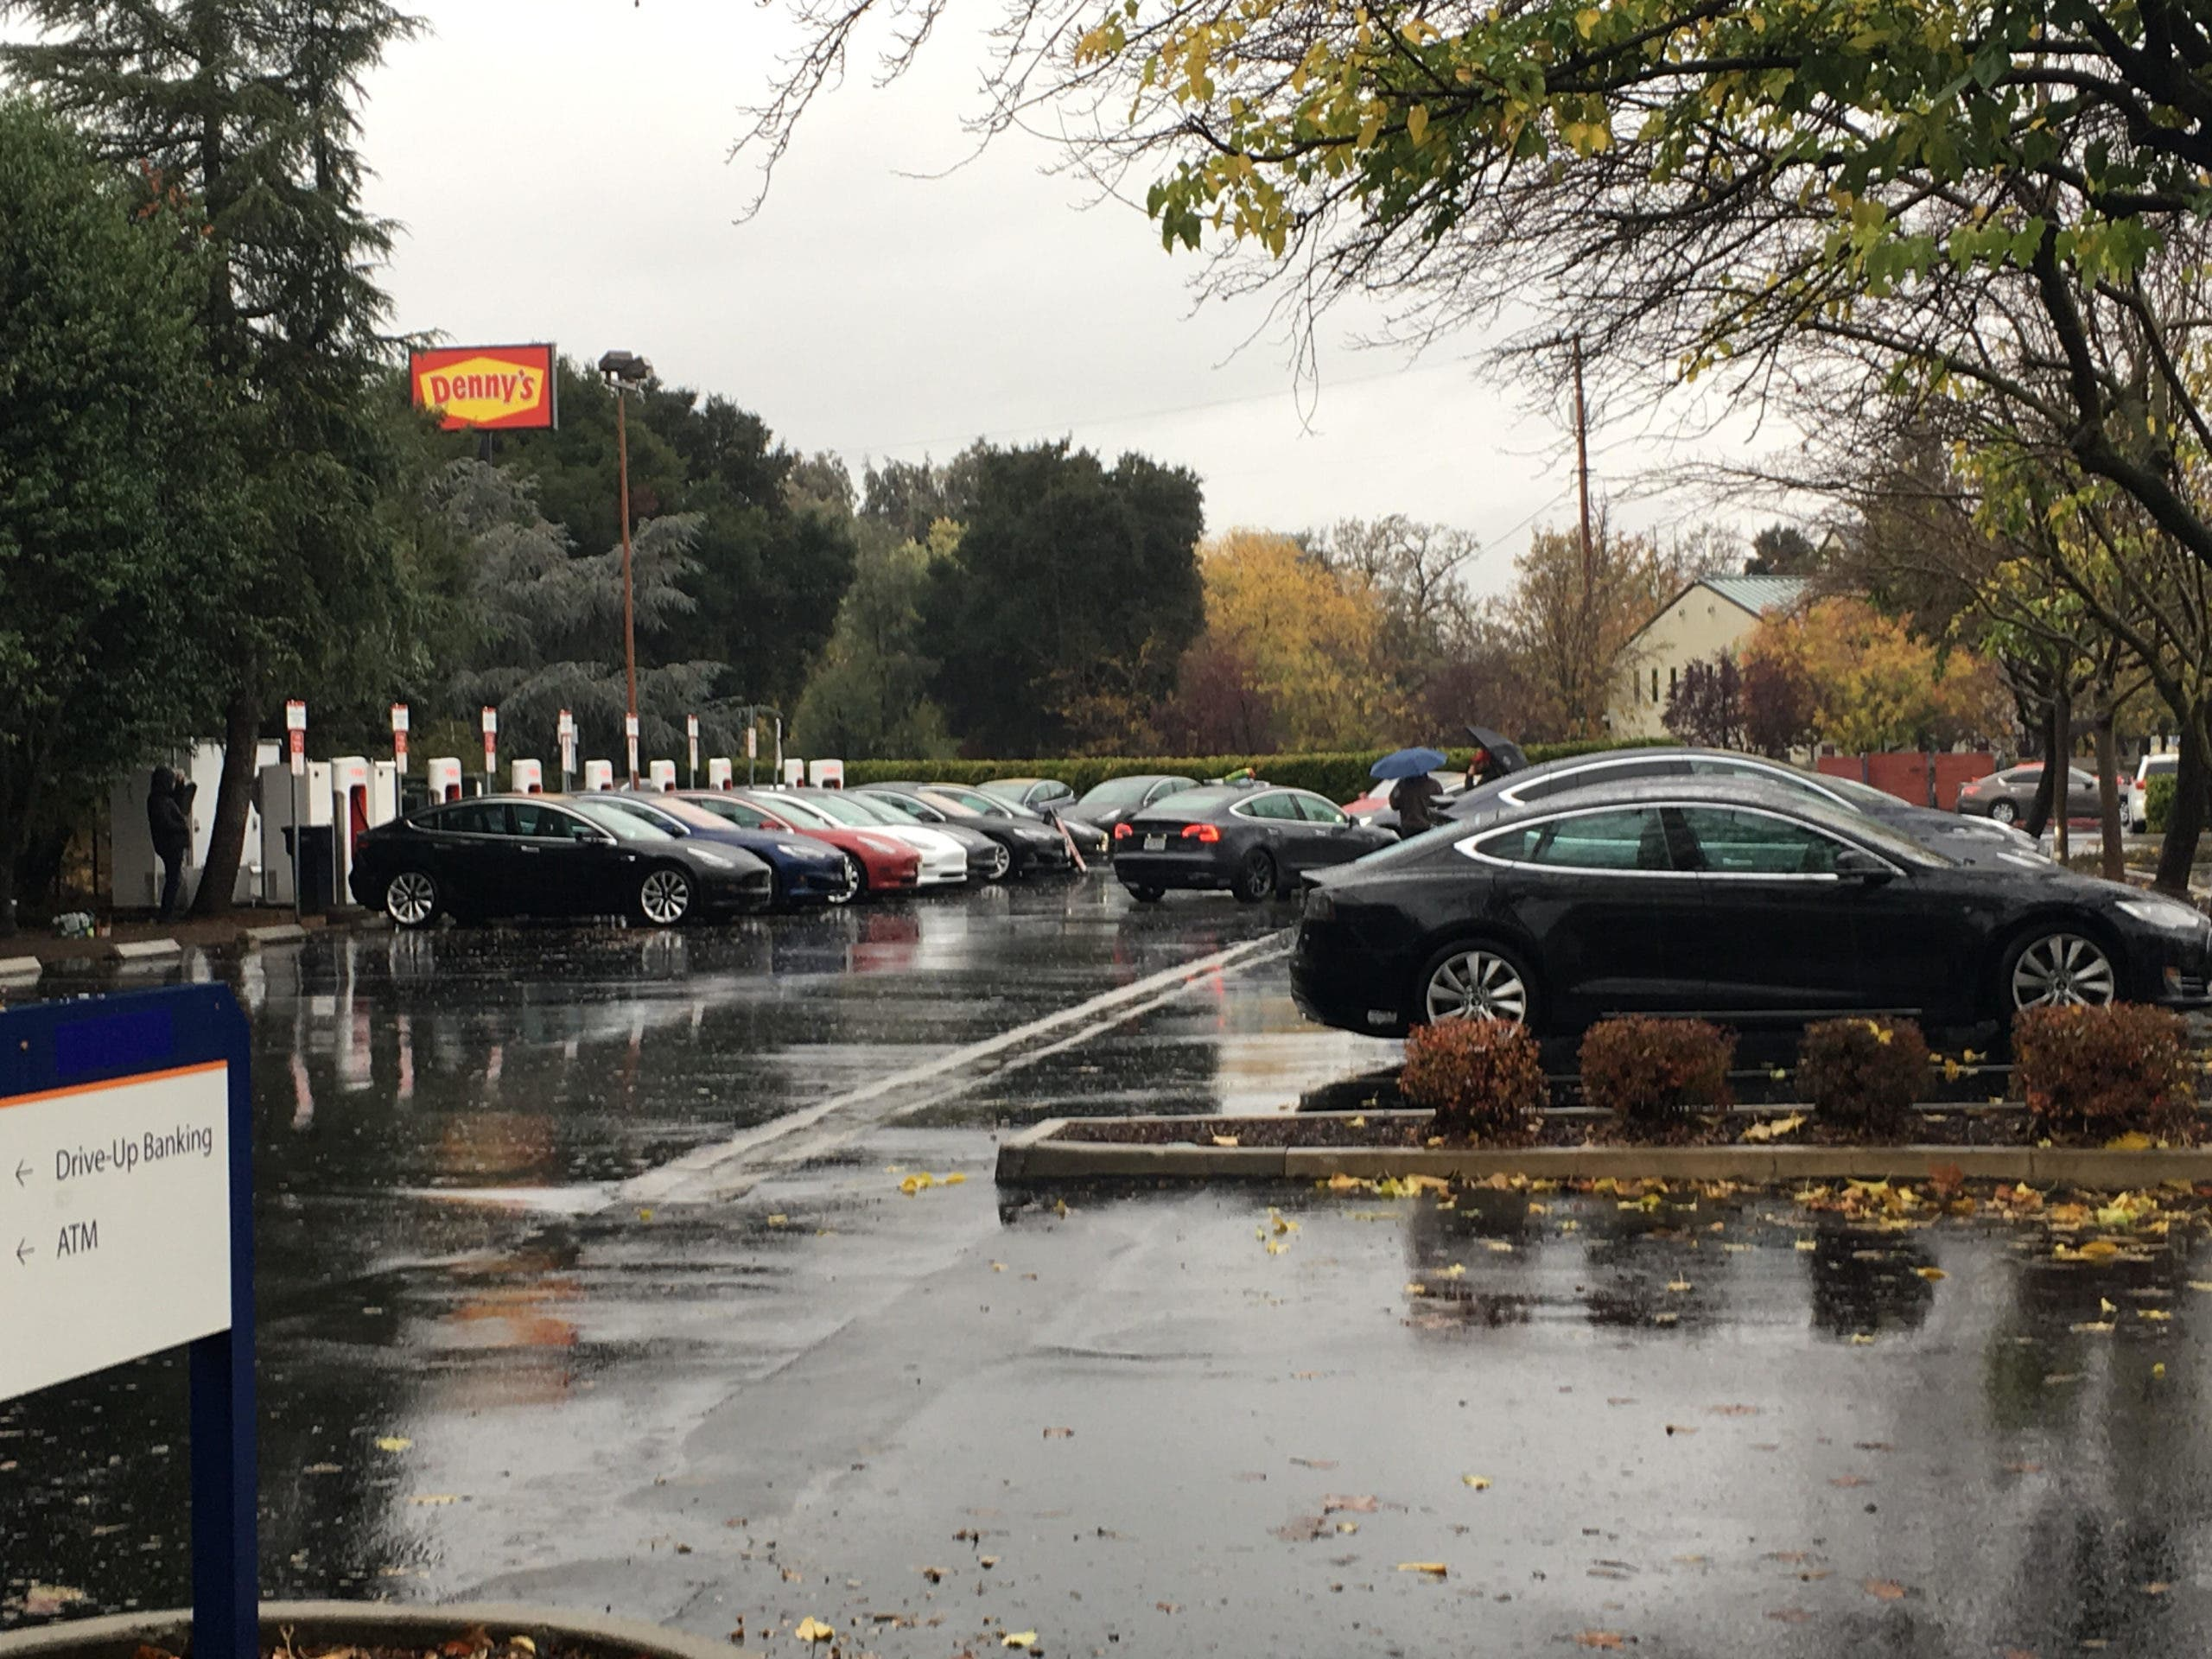 supercharger lines